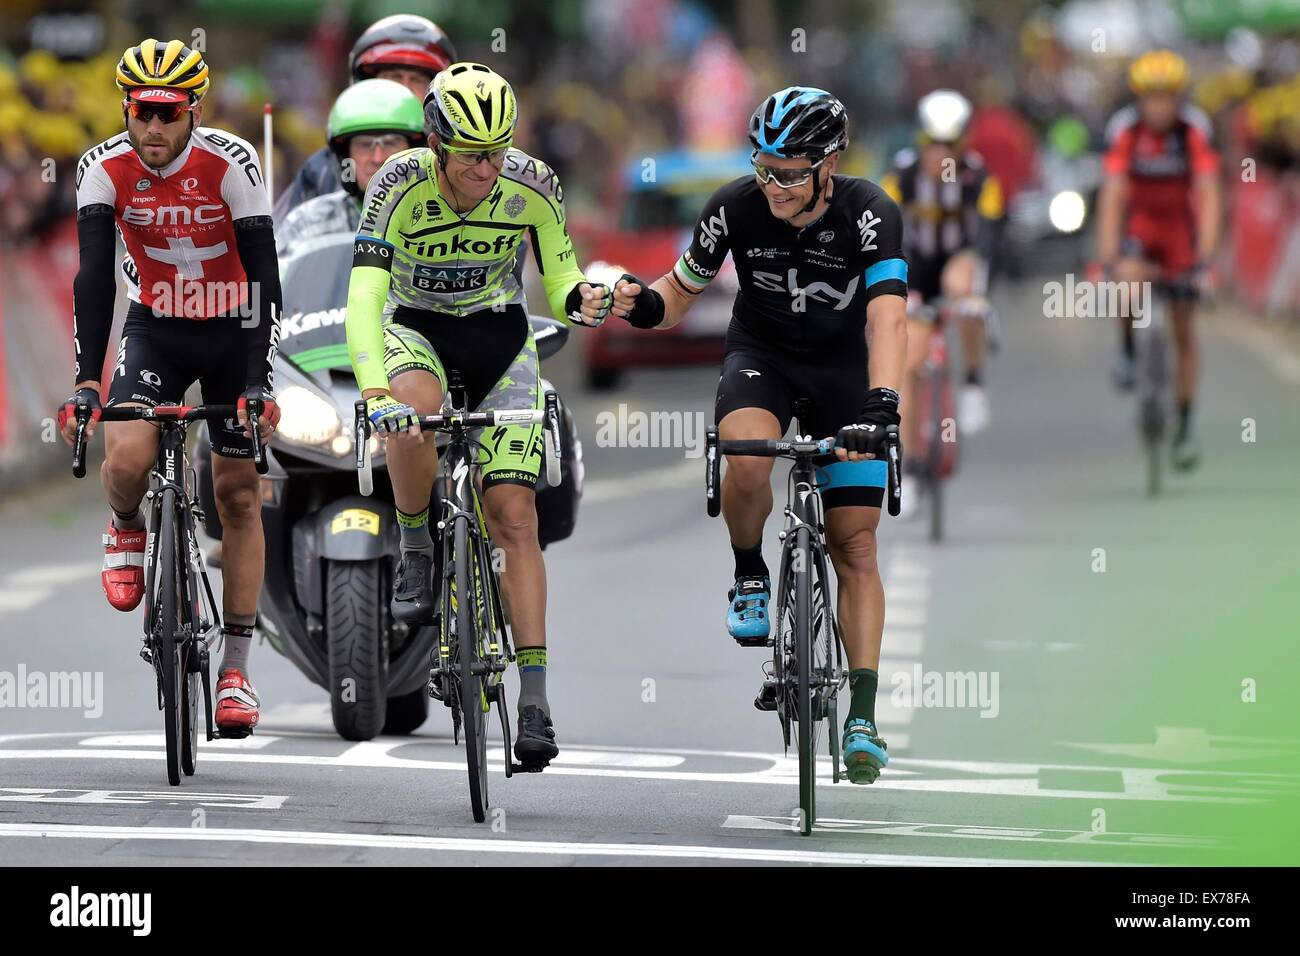 Amiens, France. 08th July, 2015. ROGERS Michael of Tinkoff ...